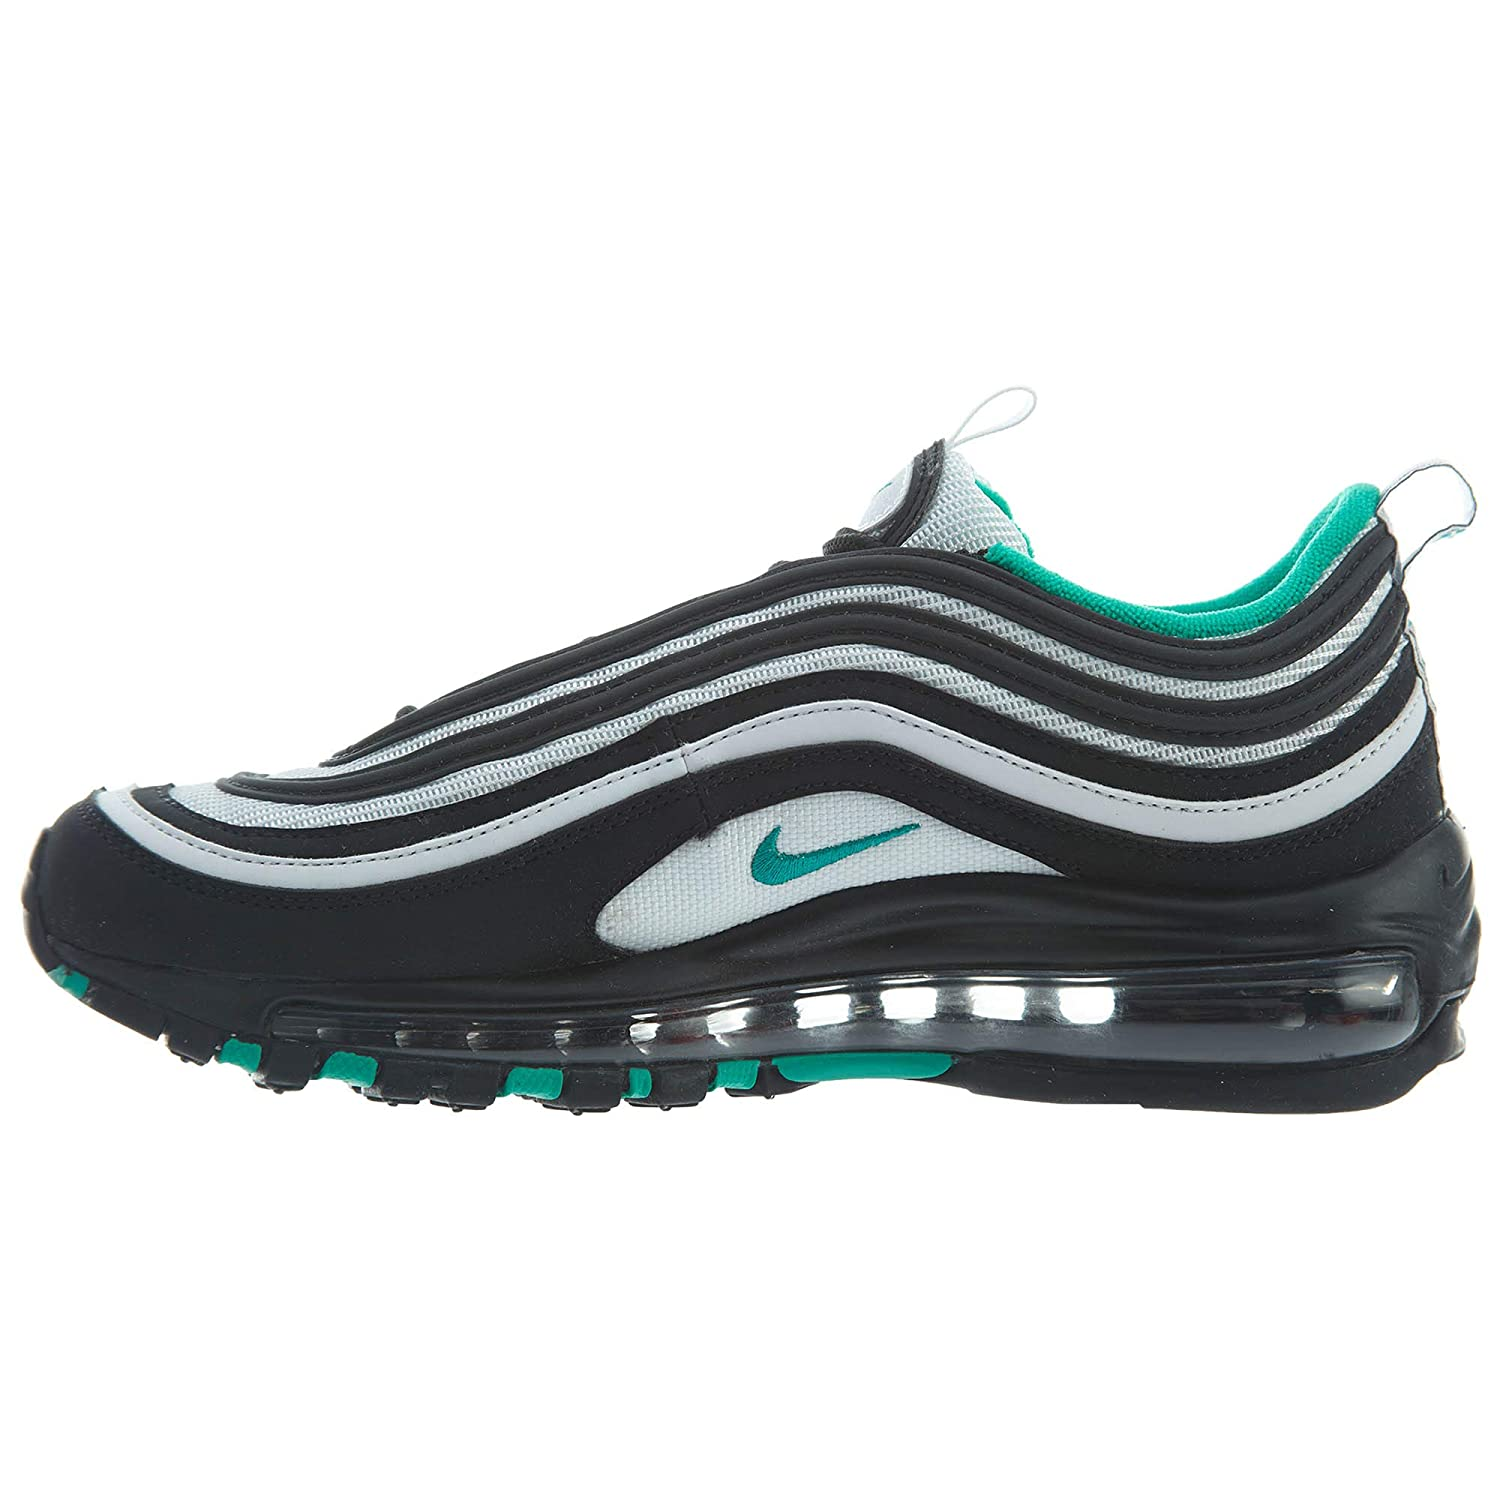 | Nike Air Max 97 (BG) Big Kids' Shoes Black